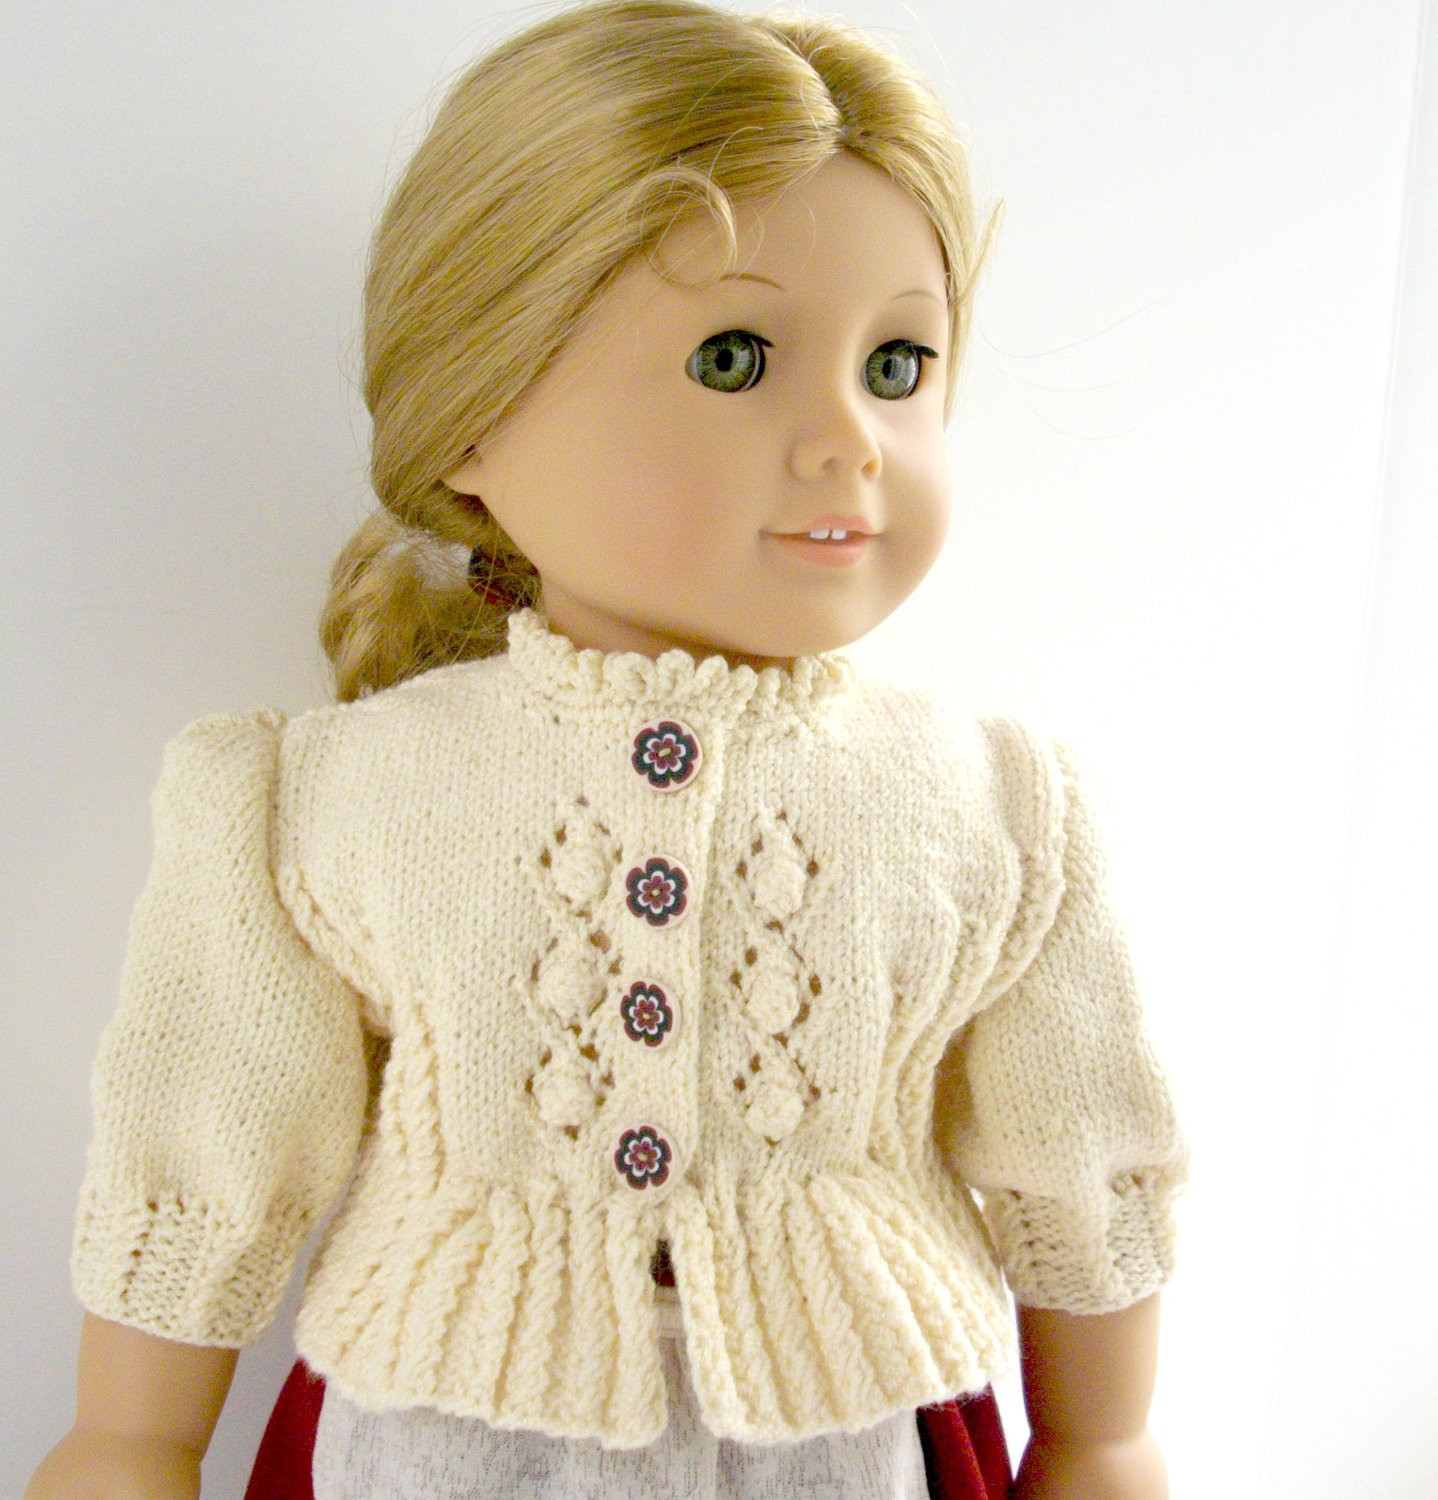 Doll Patterns Fresh American Girl Doll 18 Gotz Doll Knitting Pattern Folk Of Doll Patterns Best Of Rag Doll Patterns